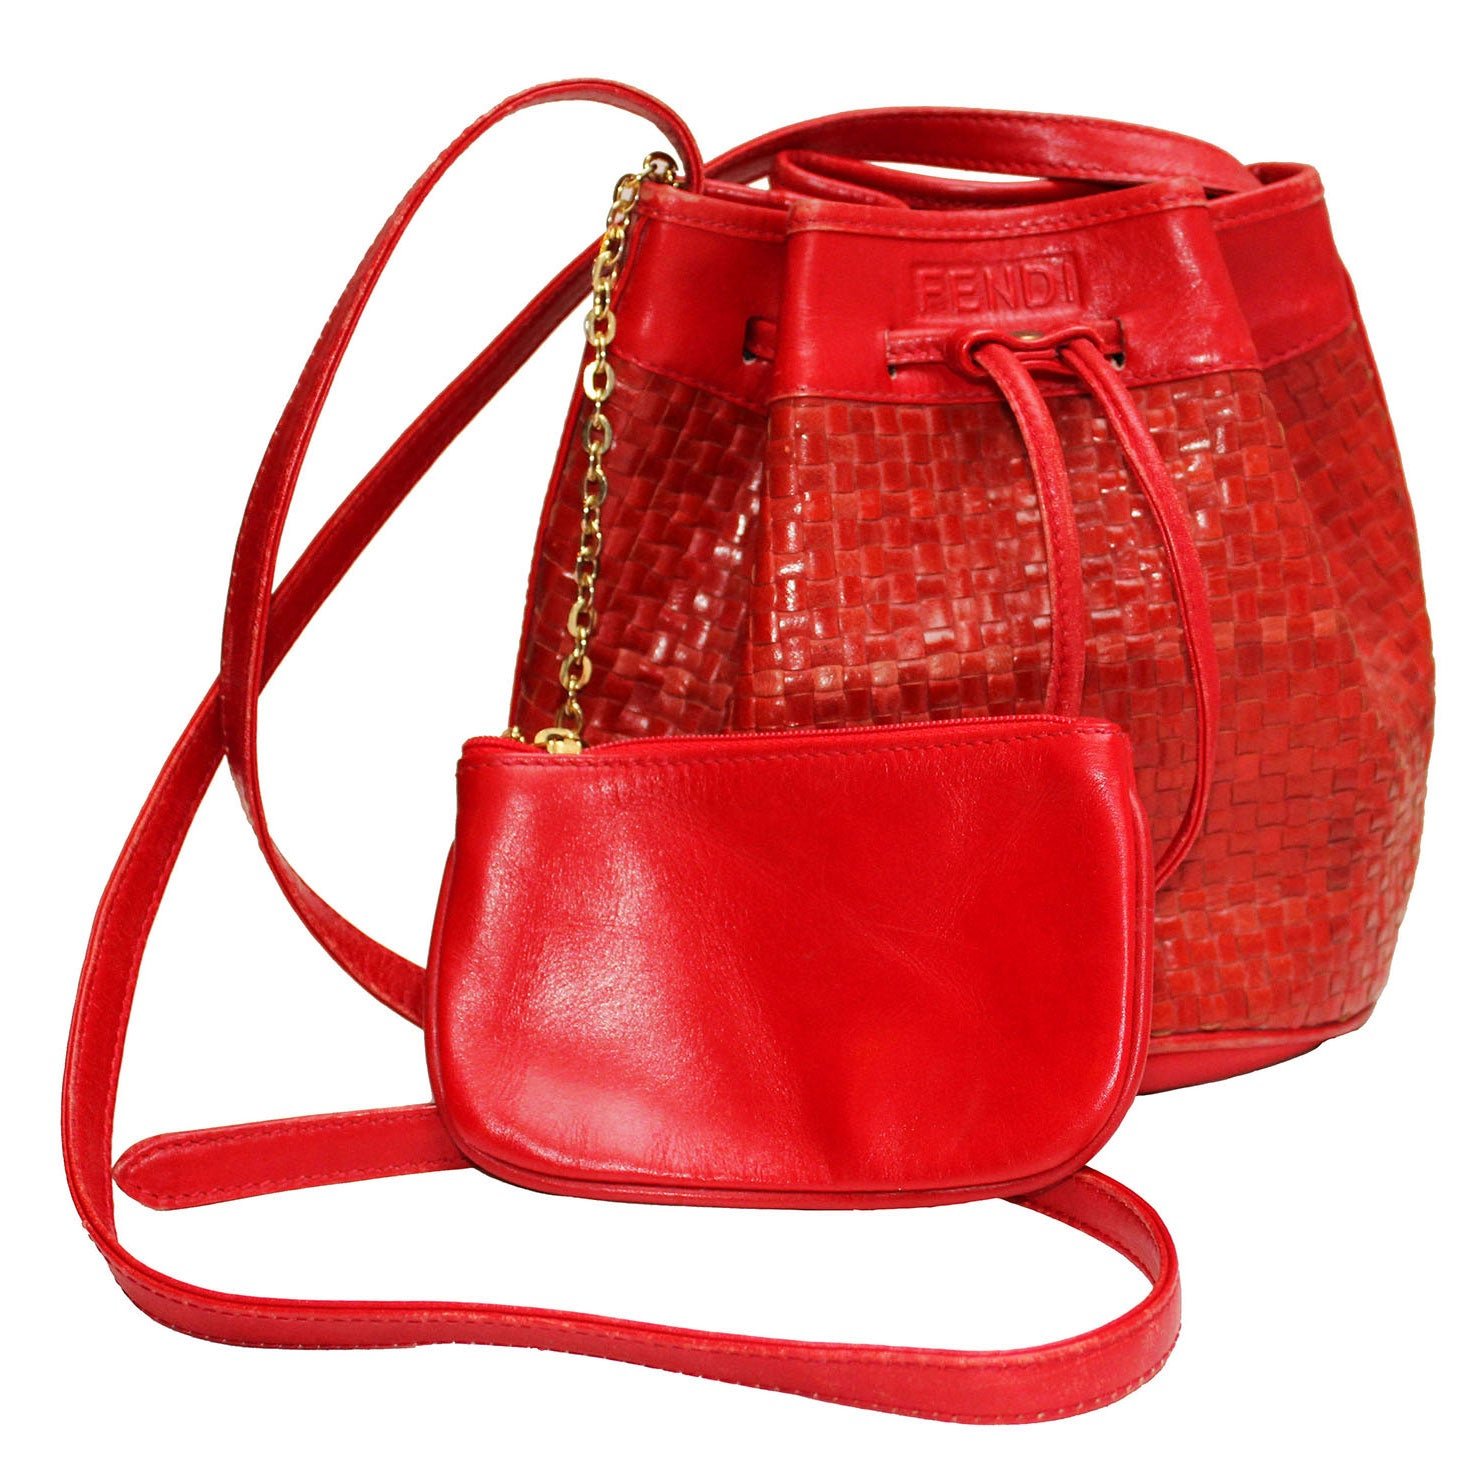 1970s Fendi Red Woven Leather Bucket Bag at 1stdibs bffc898395f92